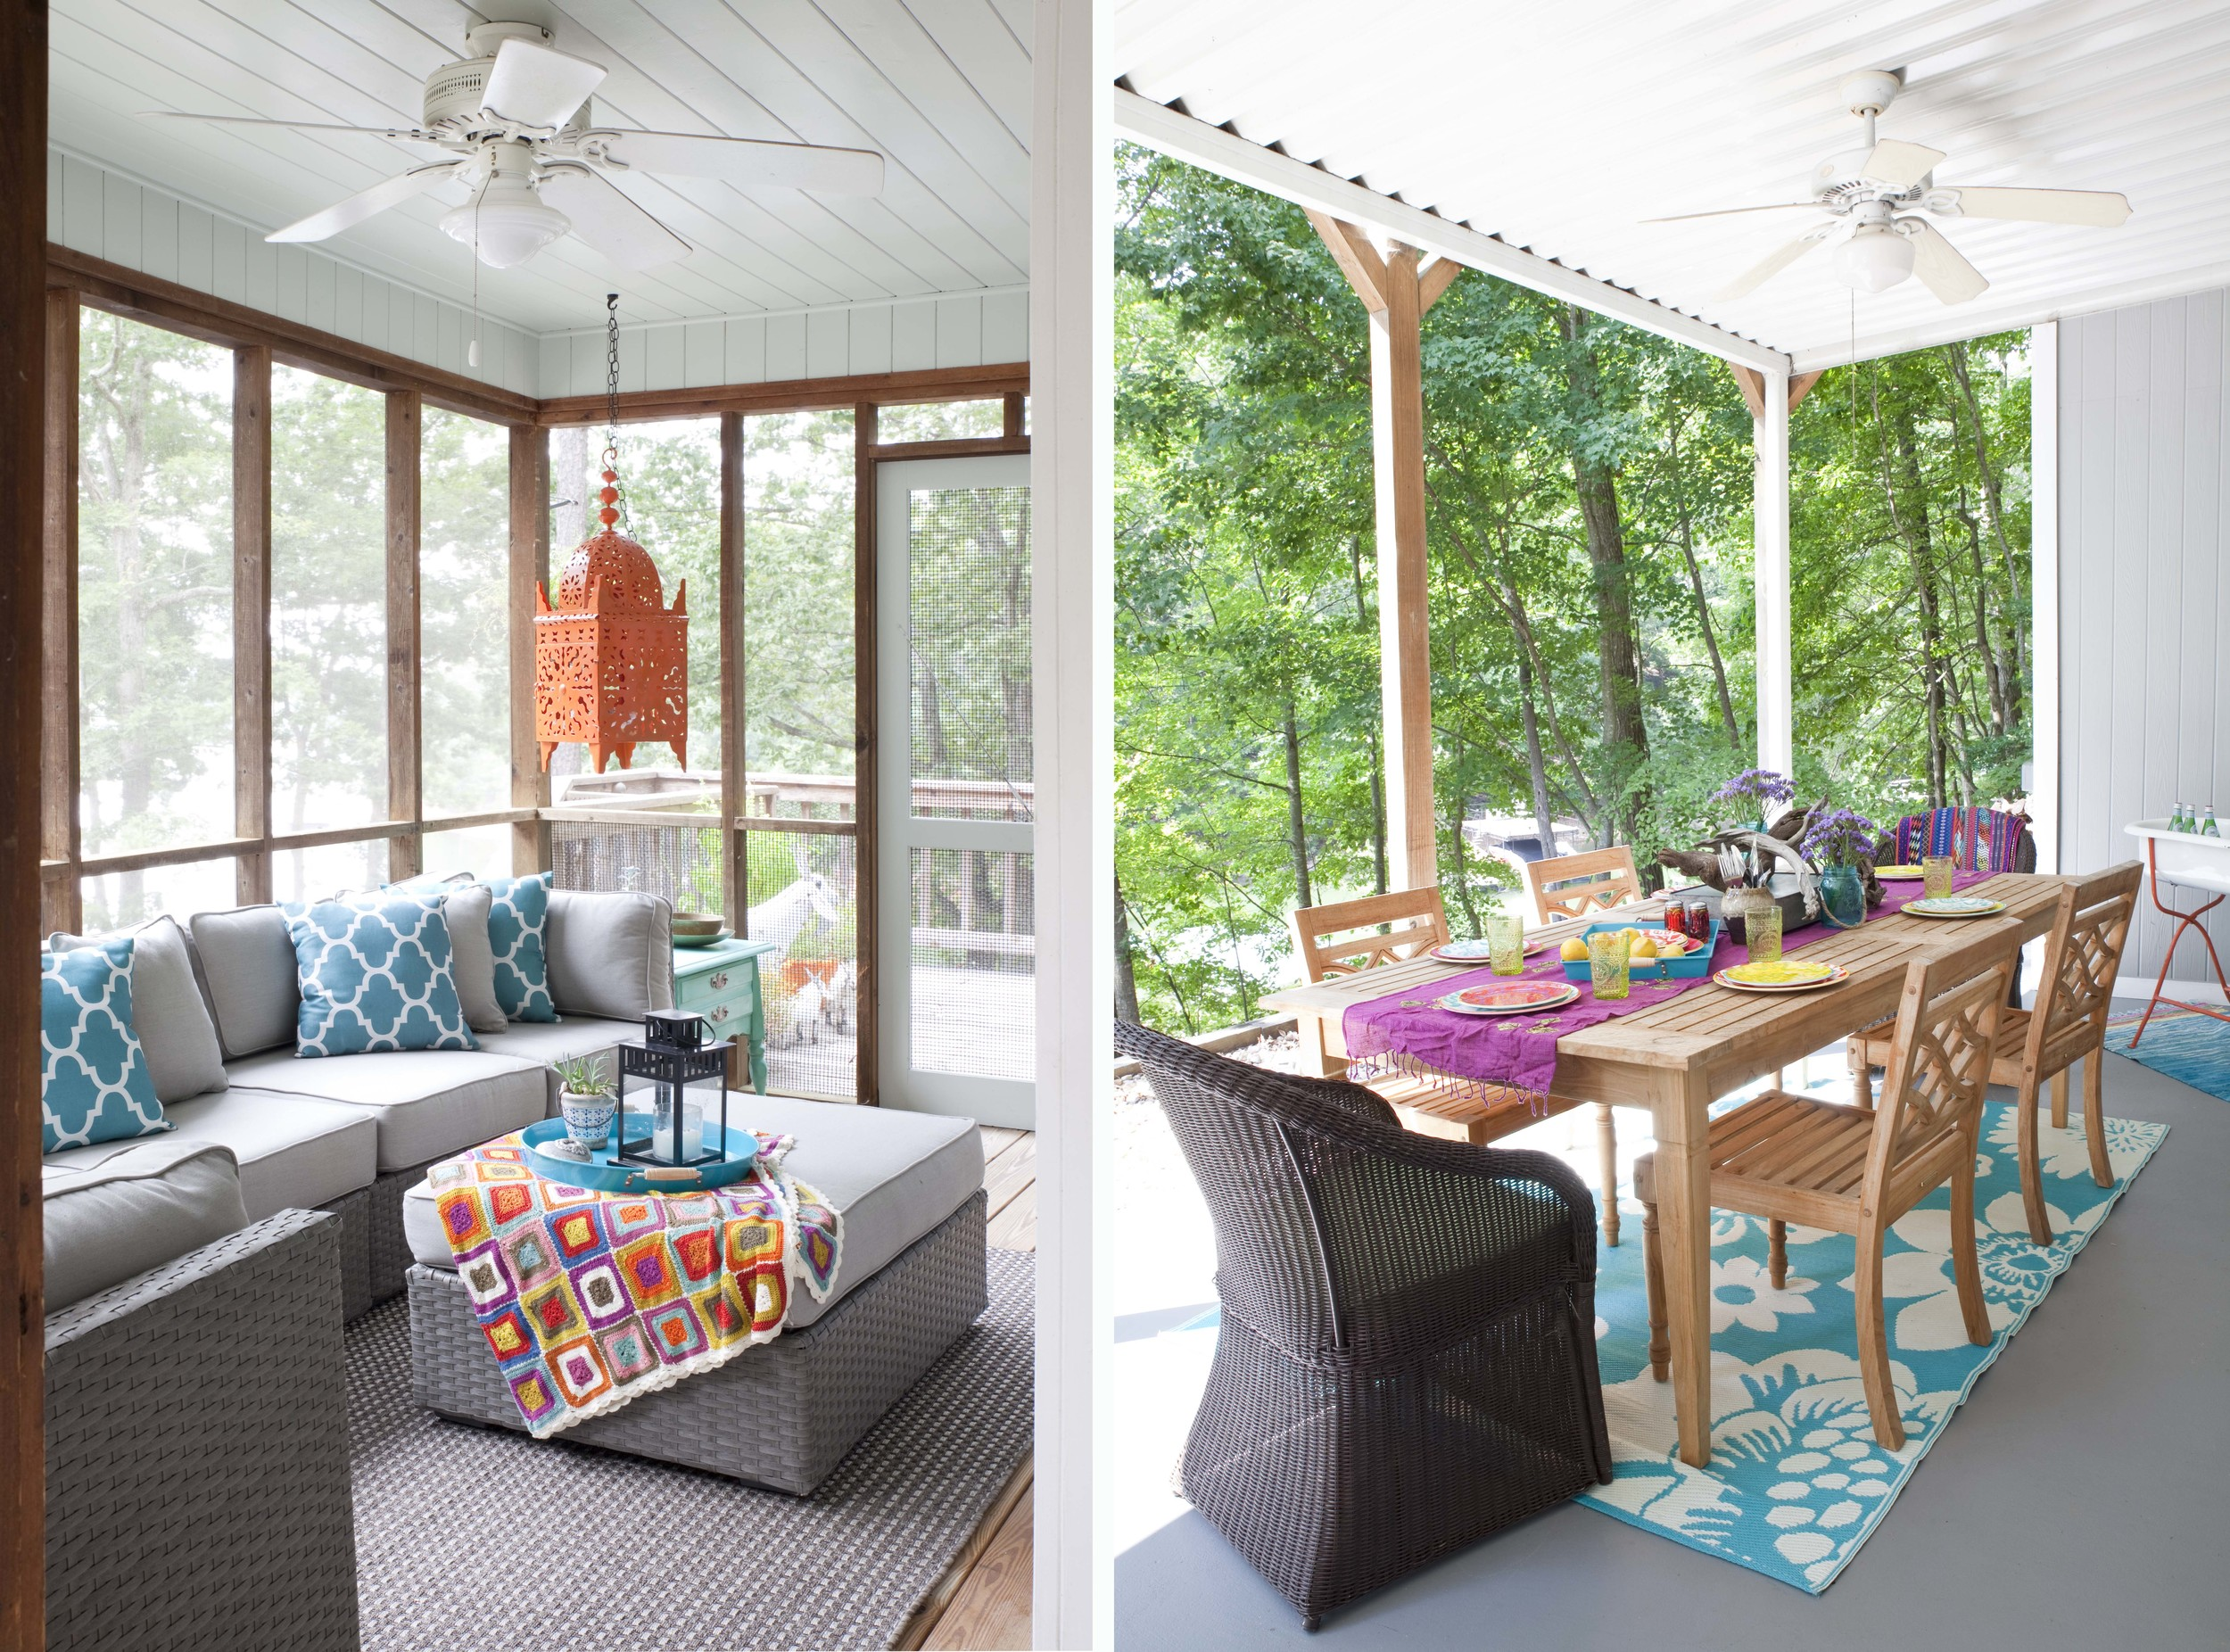 Photos by Christina Wedge, Stying by Susie Roupe for B Interiors